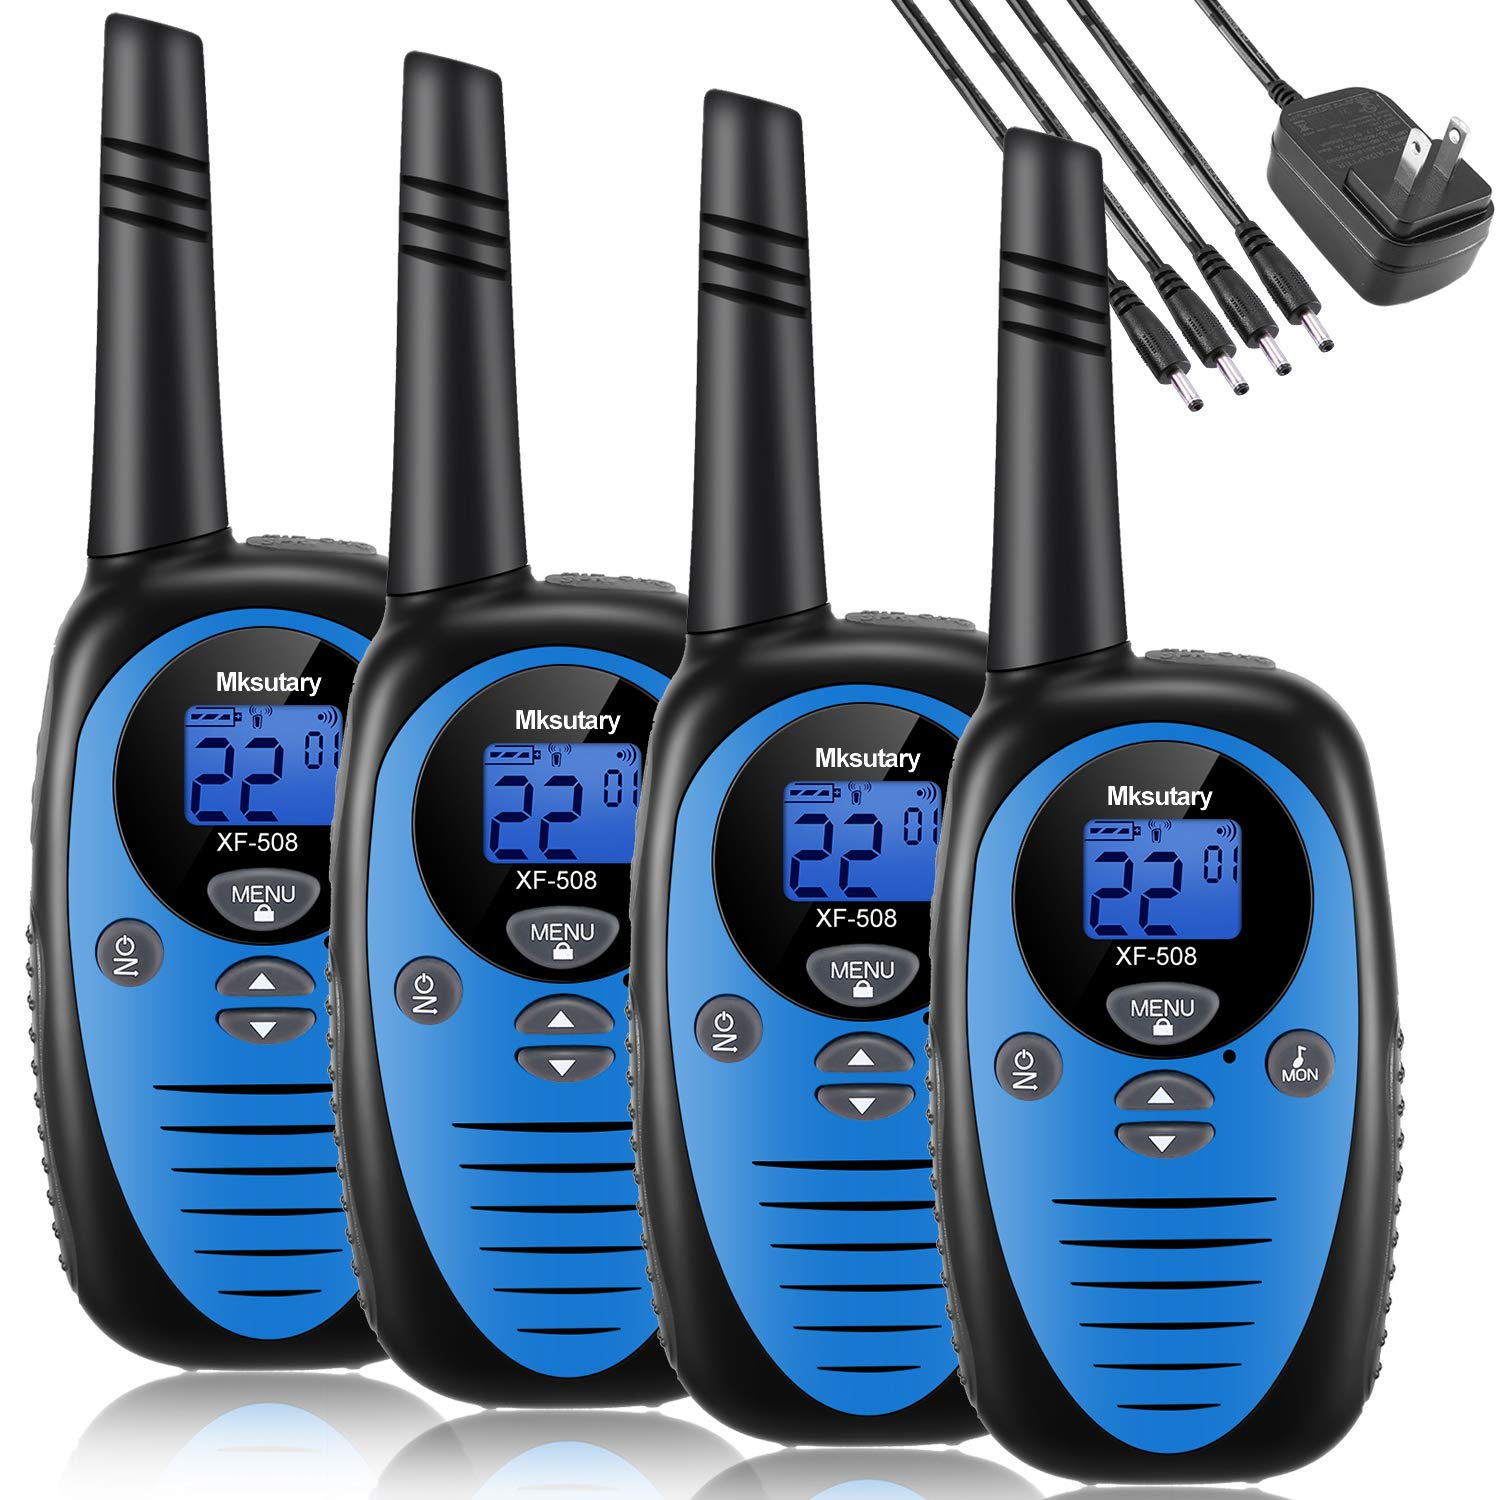 Walkie Talkies Rechargeable 4 Pack, Mksutary walkie talkies for Kids,2 Way Radios Kids Toys,Long Range 2 Miles,22 Channels Transceiver with DC Charger for Children Adults Biking Hiking Blue